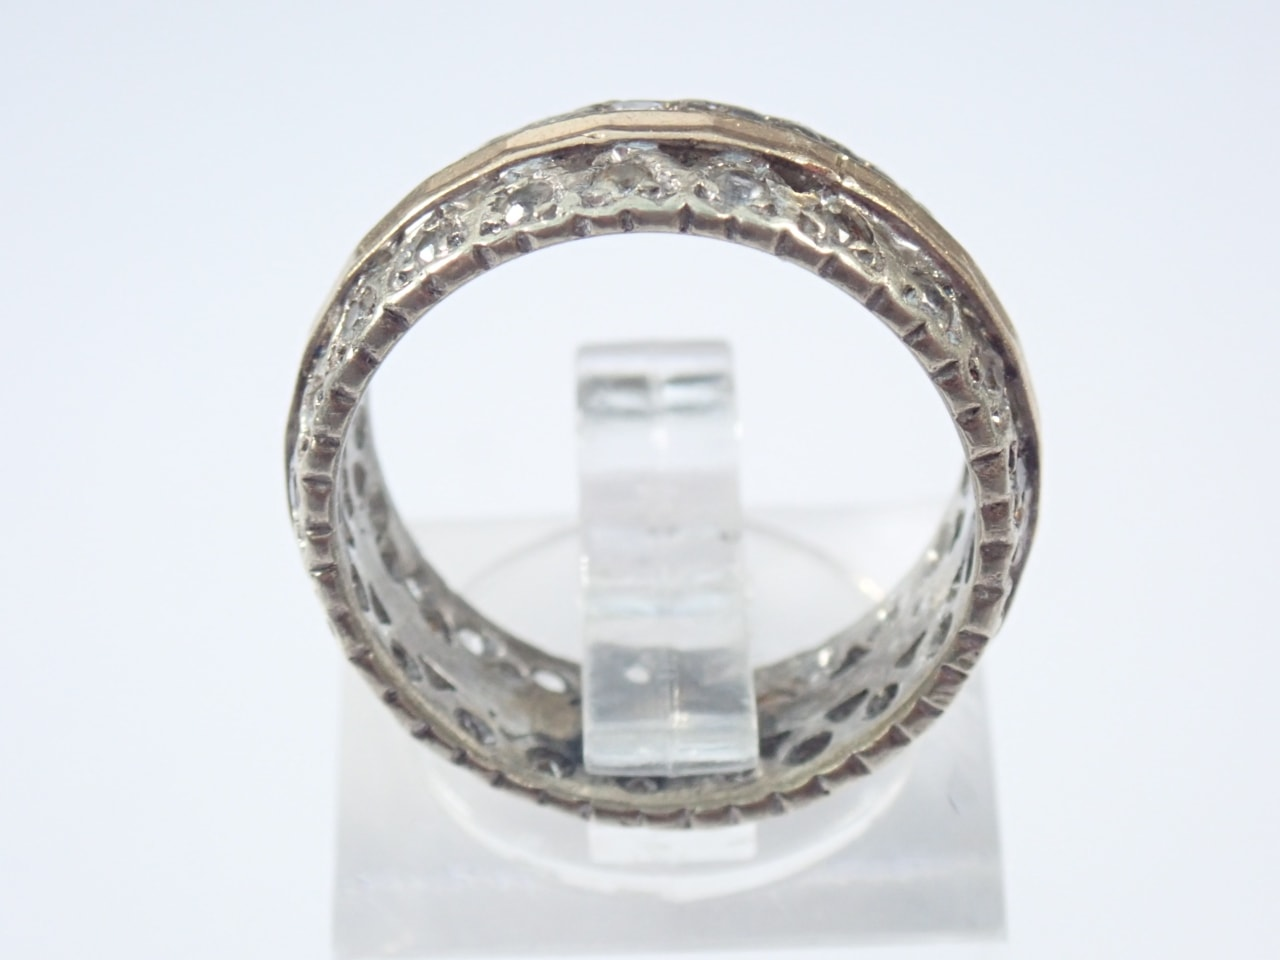 Cubic Zirconia Eternity Band 375 Carat Gold - Size M 5.4 Grams